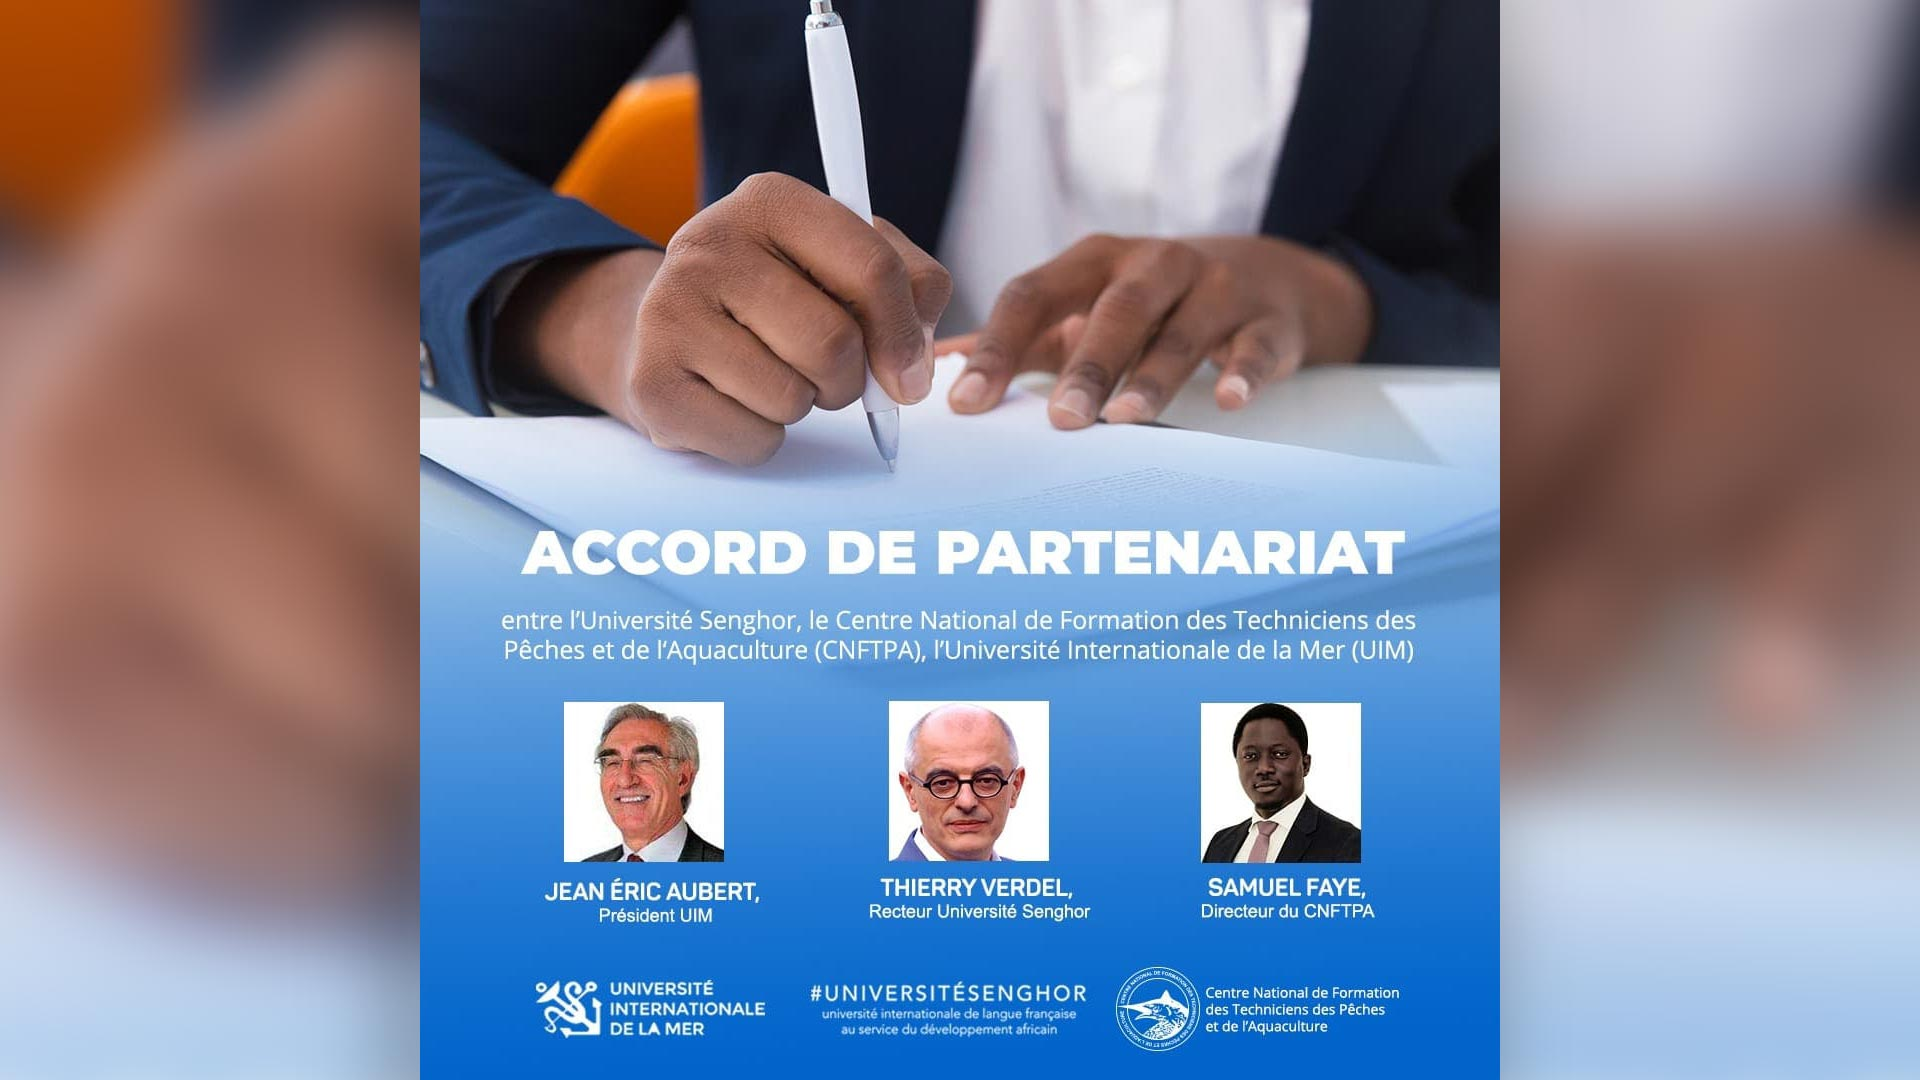 l'Université Senghor signe une convention de partenariat avec le Cnftpa Sénégal et l'Université Internationale de la Mer